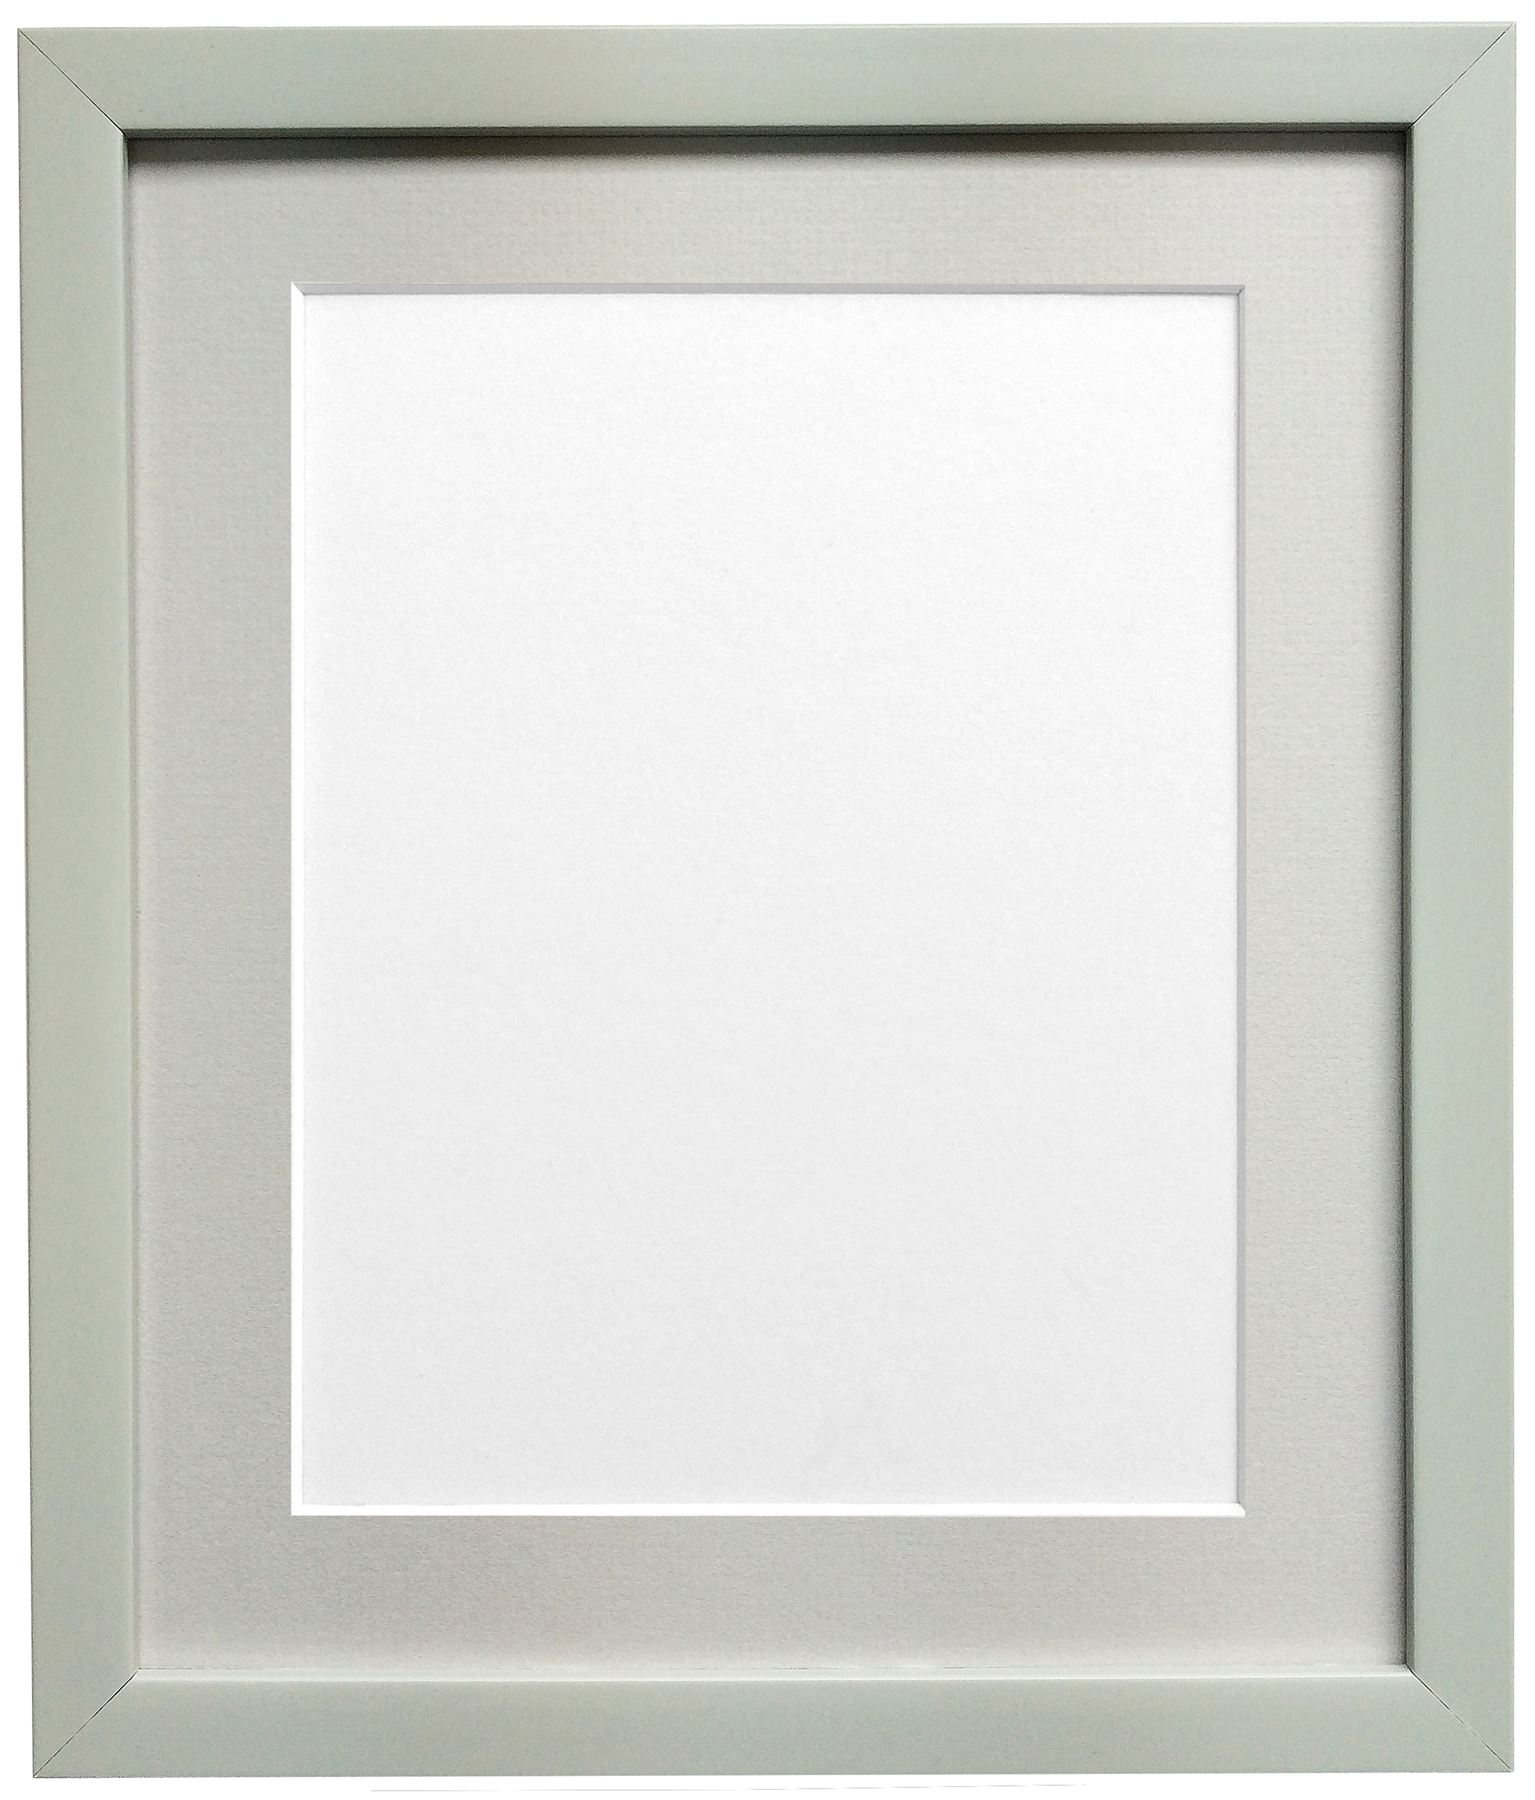 ad12d80e069 Details about 0.75 Inch Grey Picture Photo Frame With Black